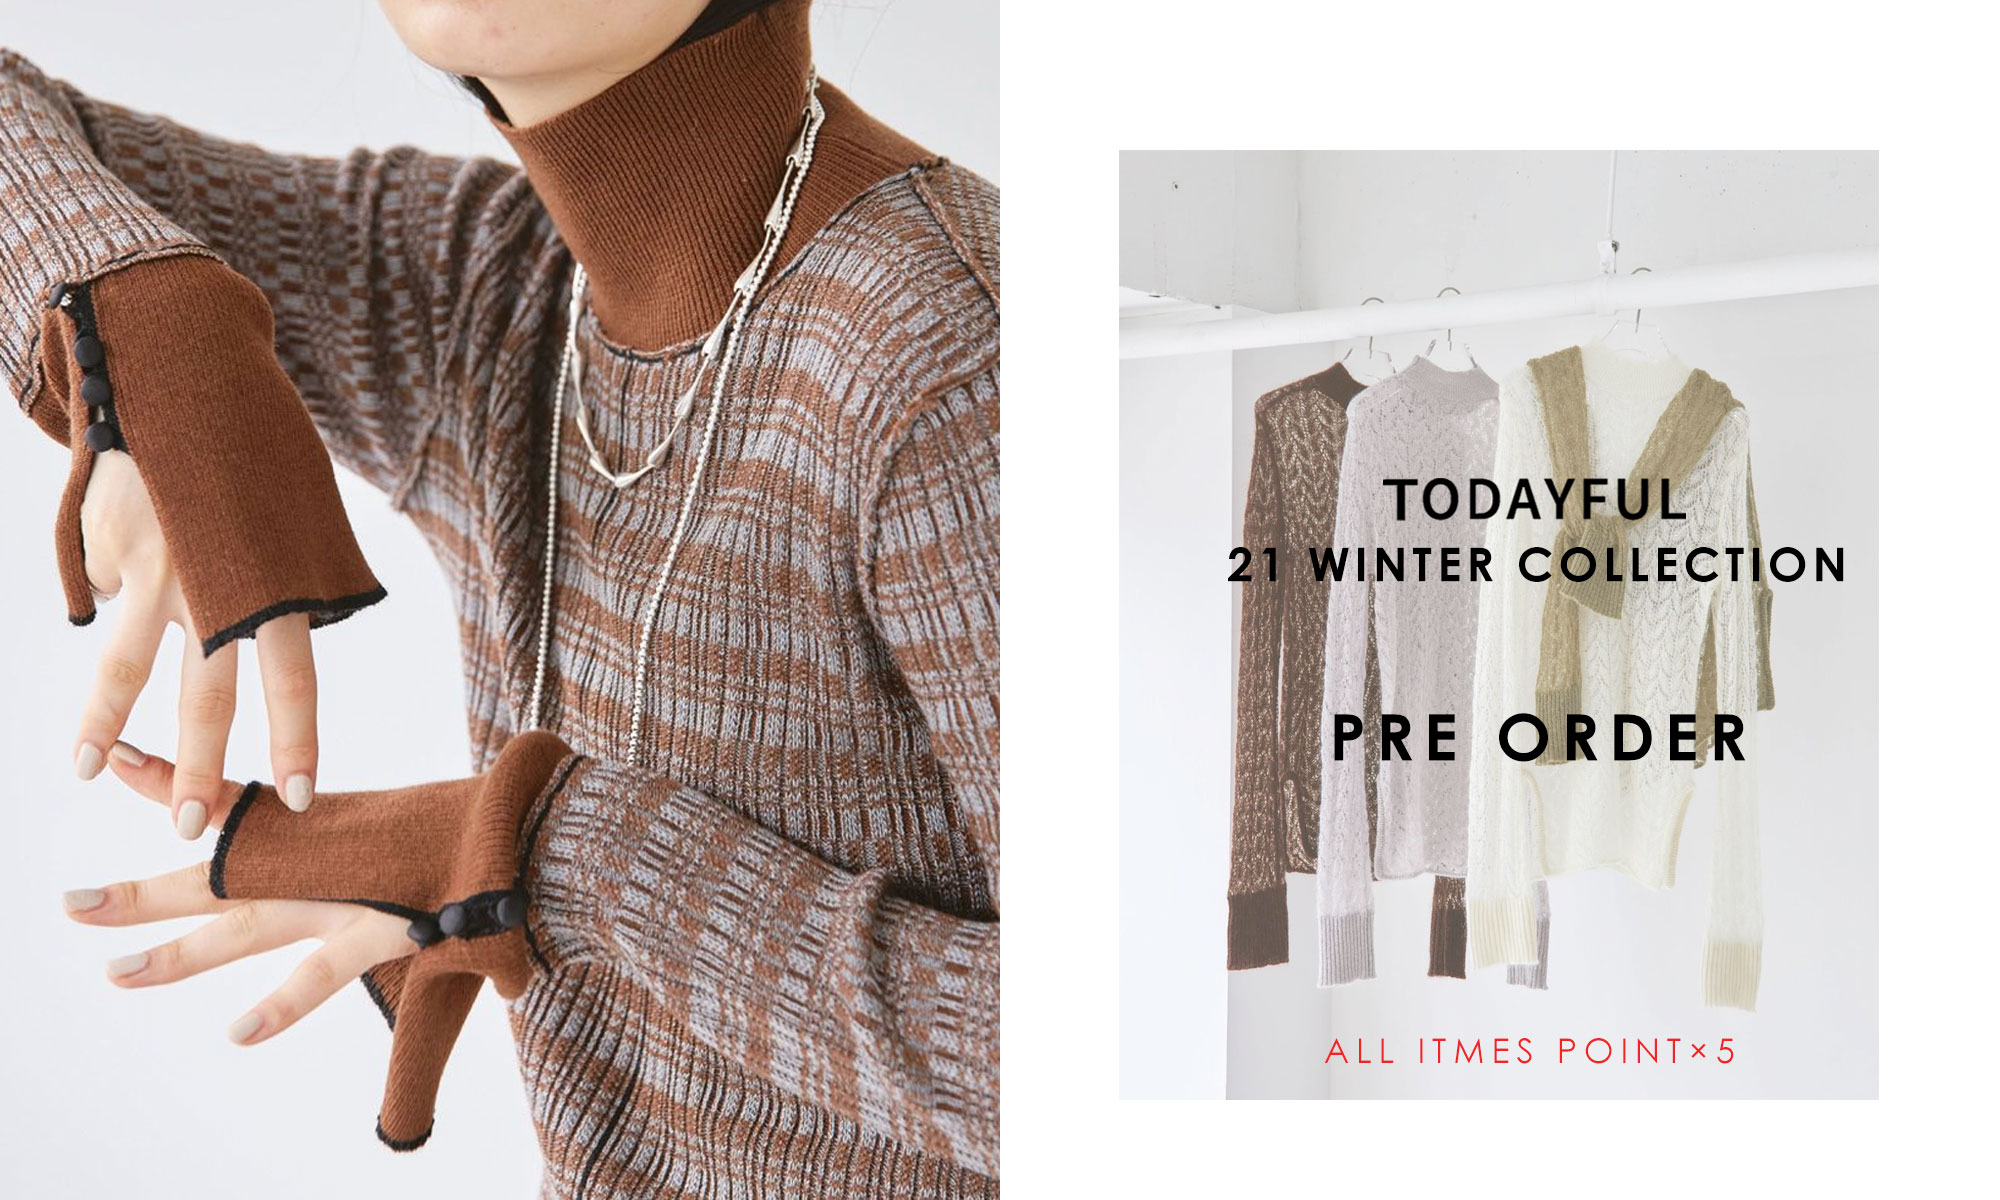 TODAYFUL 21 WINTER COLLECTION